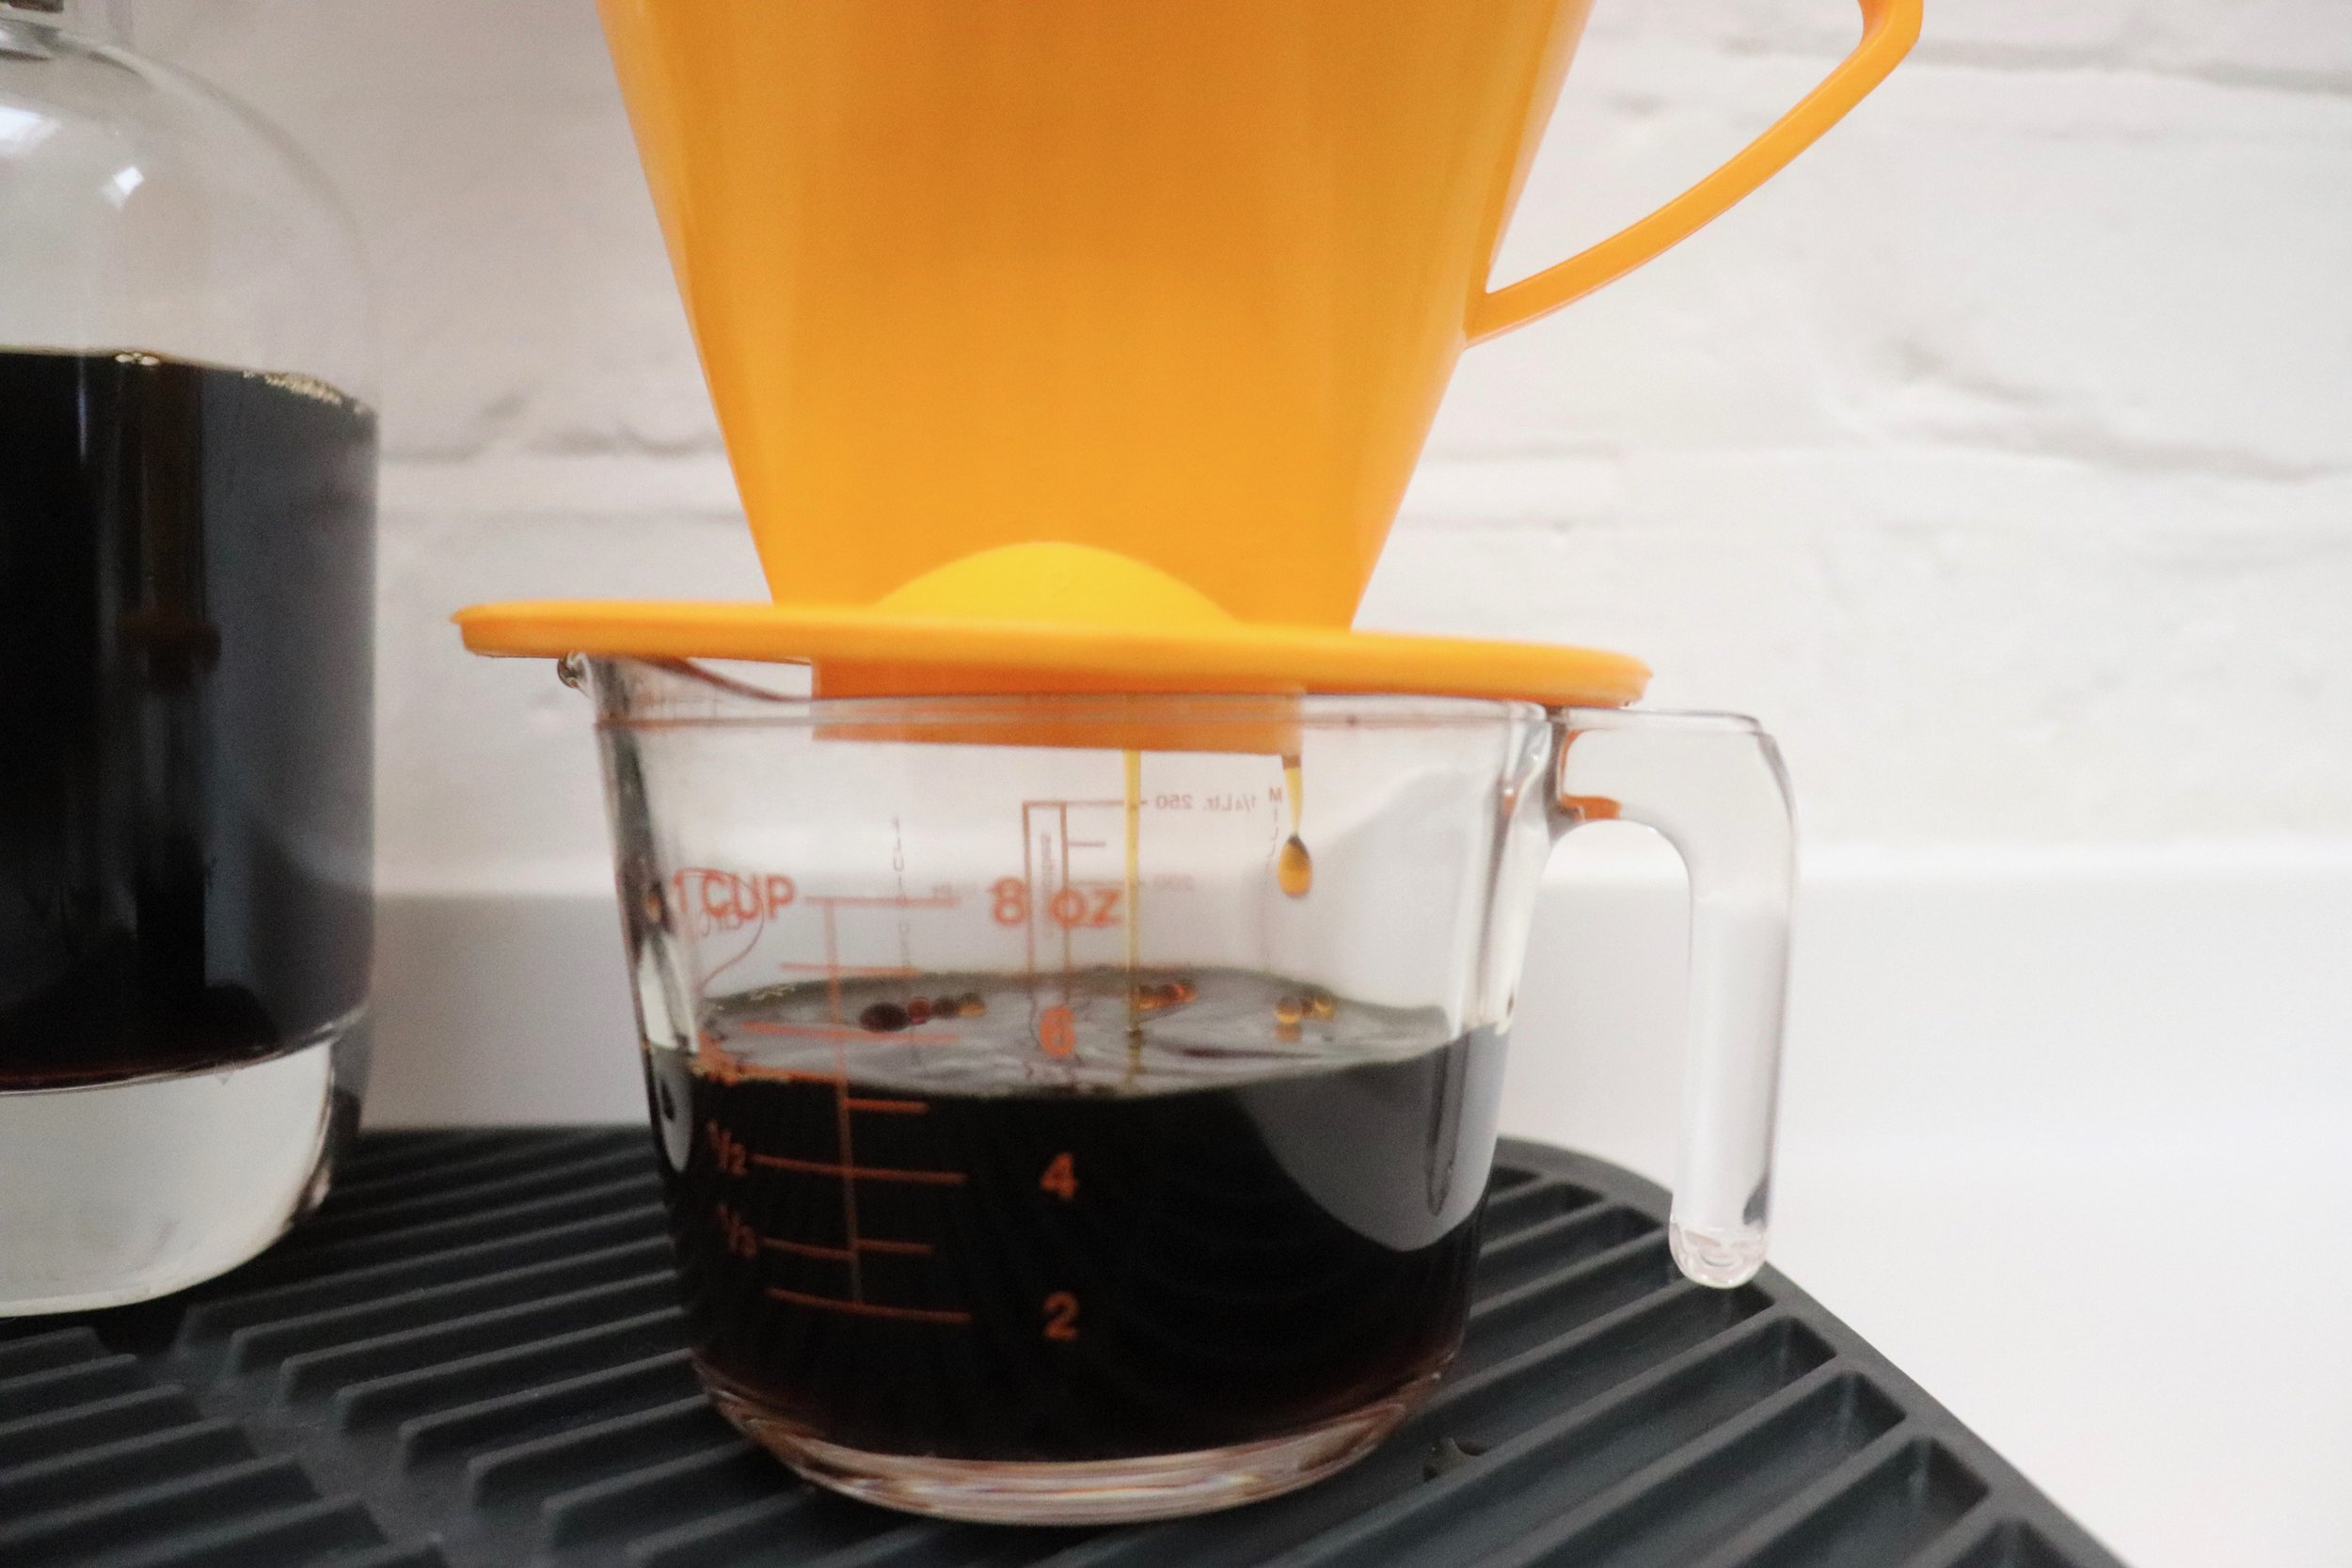 Pass the coffee concentrate through a coffee filter